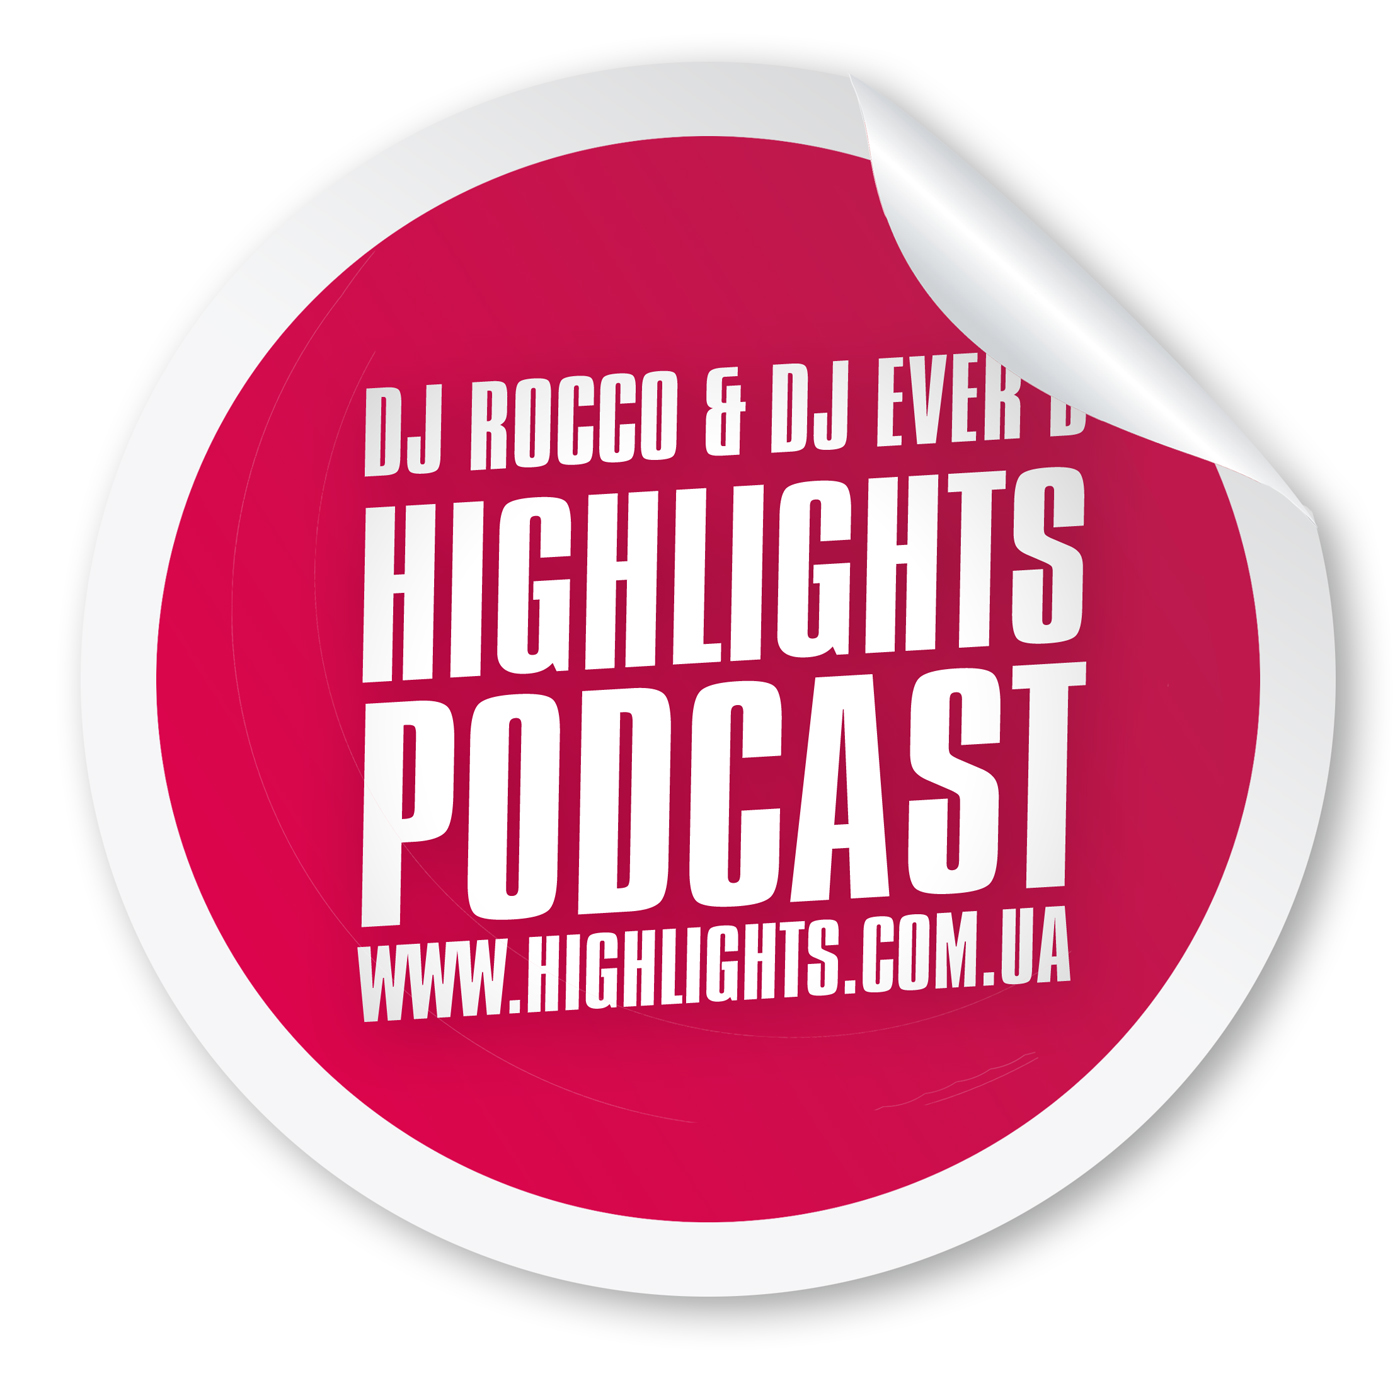 DJ Rocco ft. DJ Ever B Official Podcast